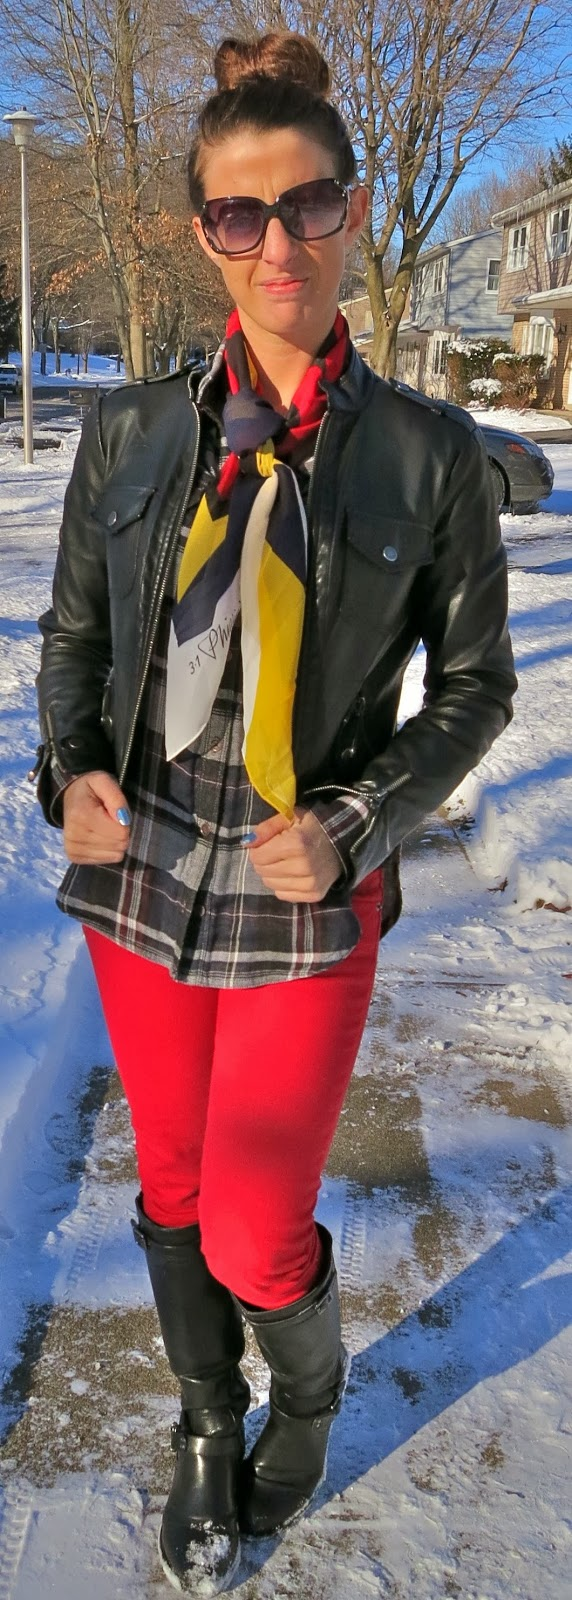 Fashion, flannel, kate spade sunglasses, Outfit Ideas, outfit of the day, Outfits, Phillip lim for target scarf, red jeans, what i wore,